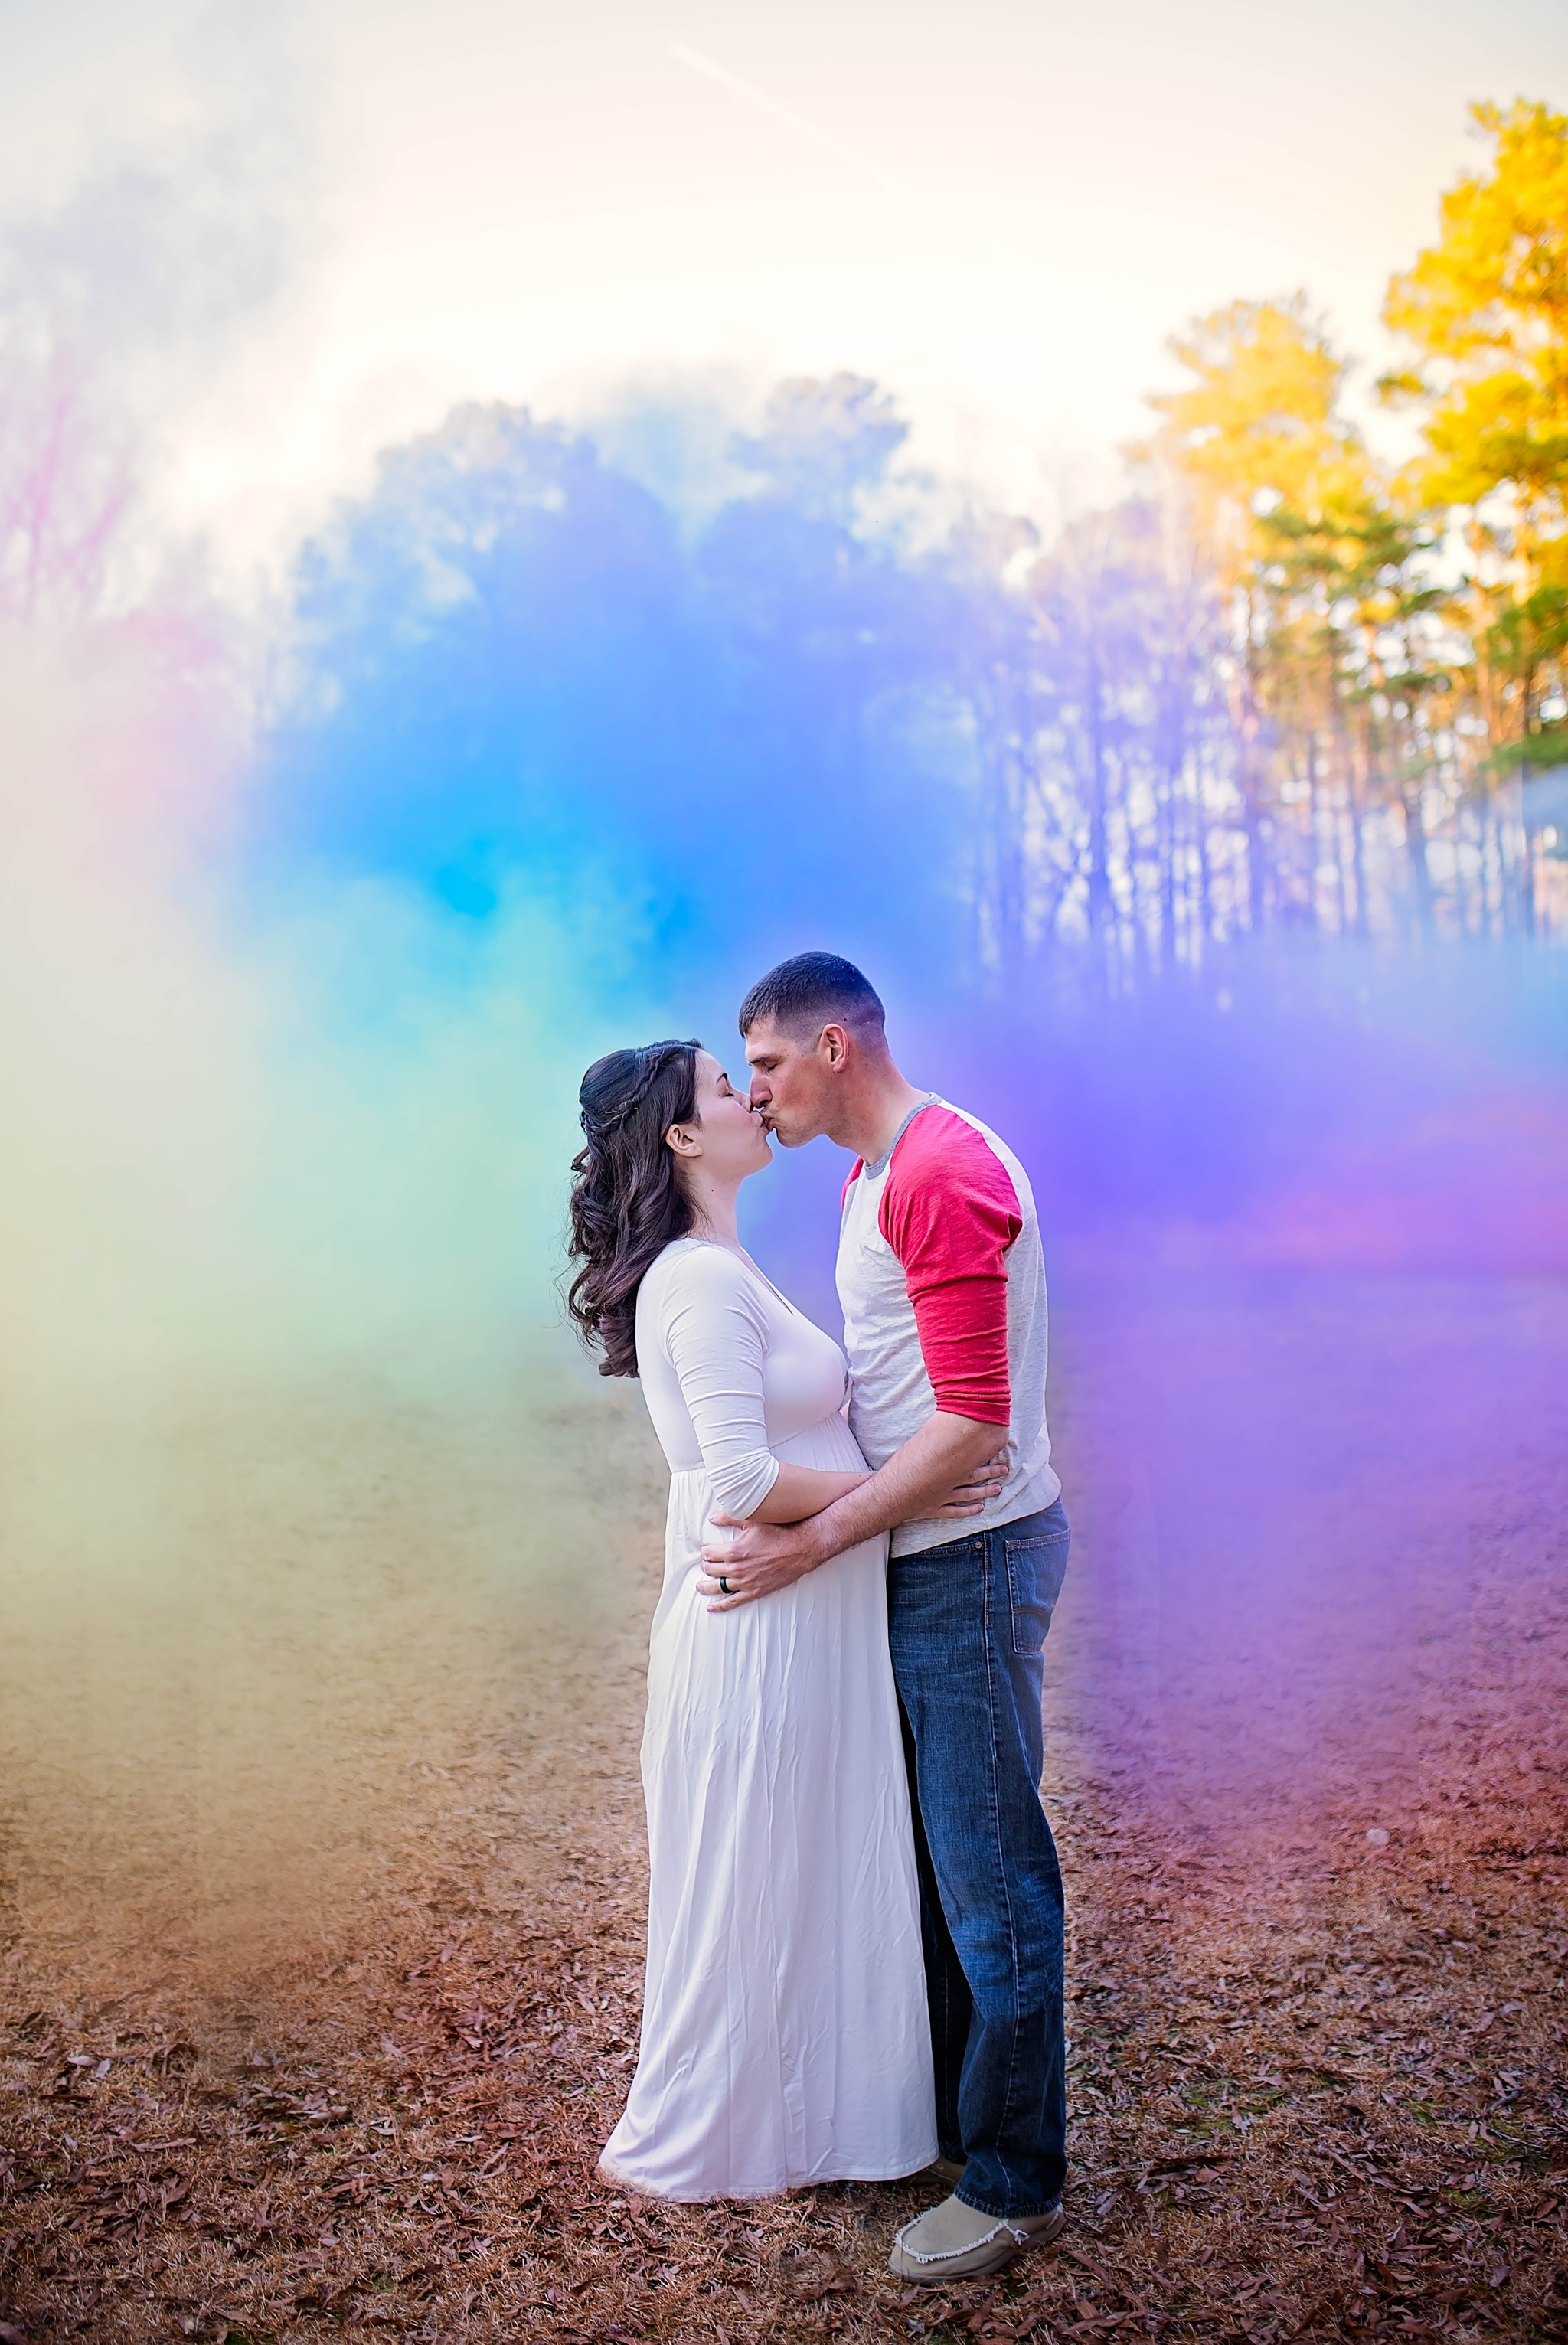 Rainbow Baby Maternity Photography Session with Smoke Bombs in Fayetteville North Carolina